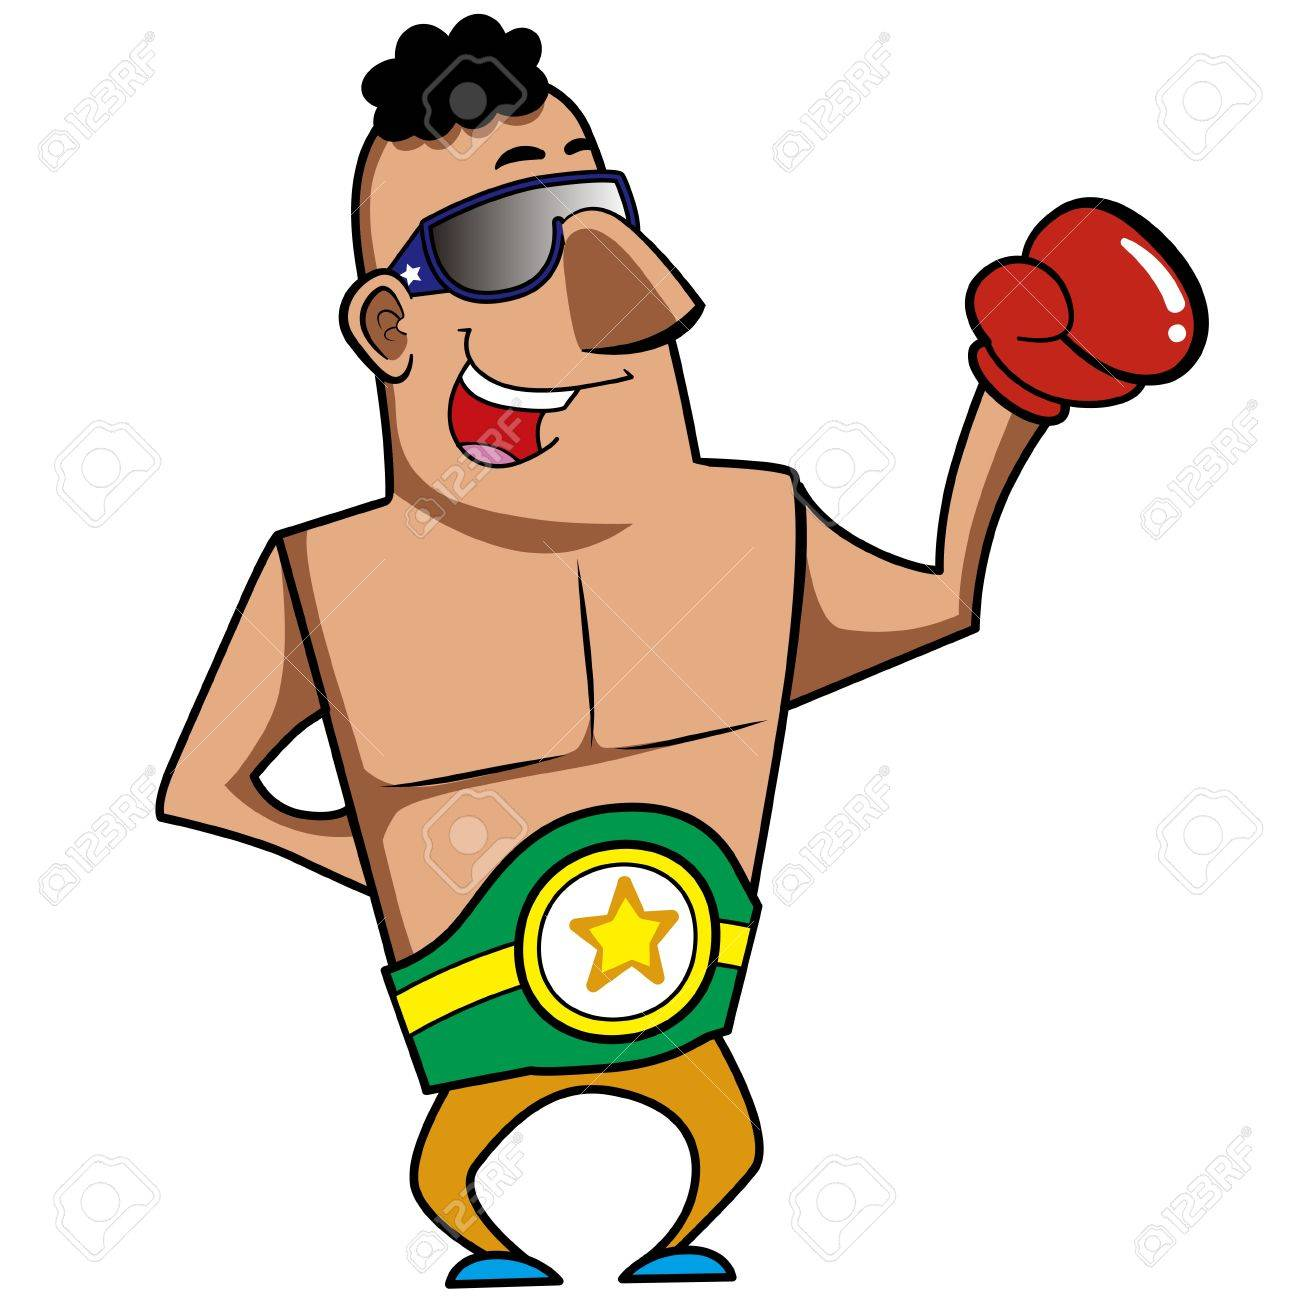 Cartoon boxer with boxing gloves vector illustration Stock Vector - 18376442